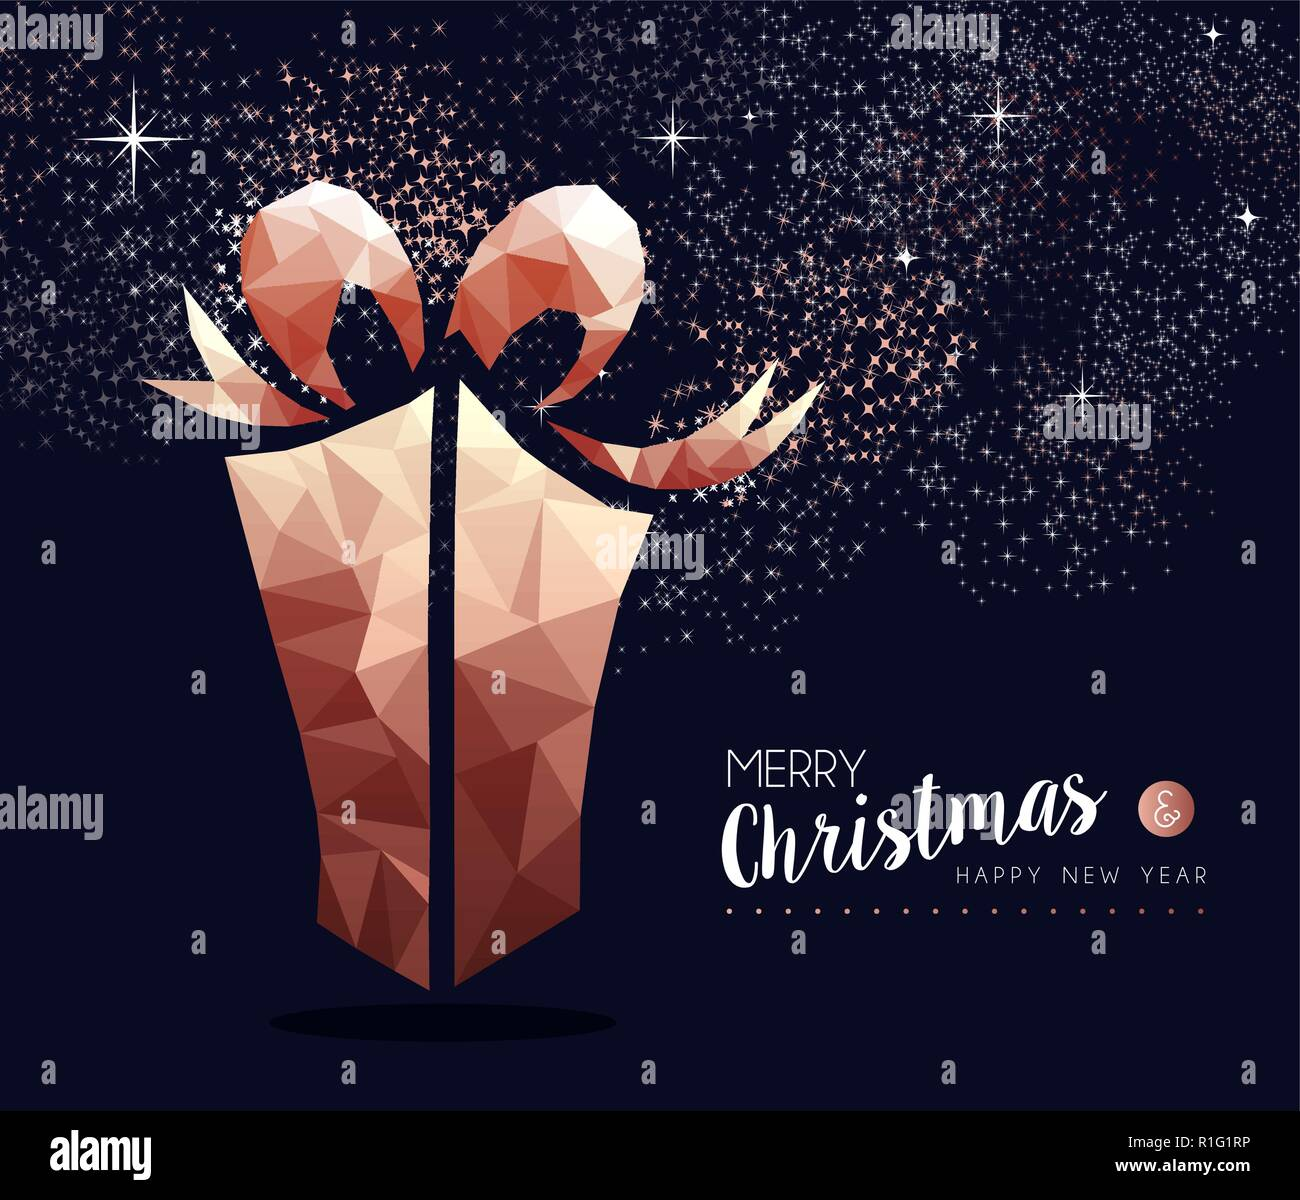 merry christmas and happy new year fancy copper gift box in hipster triangle low poly style ideal for xmas greeting card or elegant holiday party inv